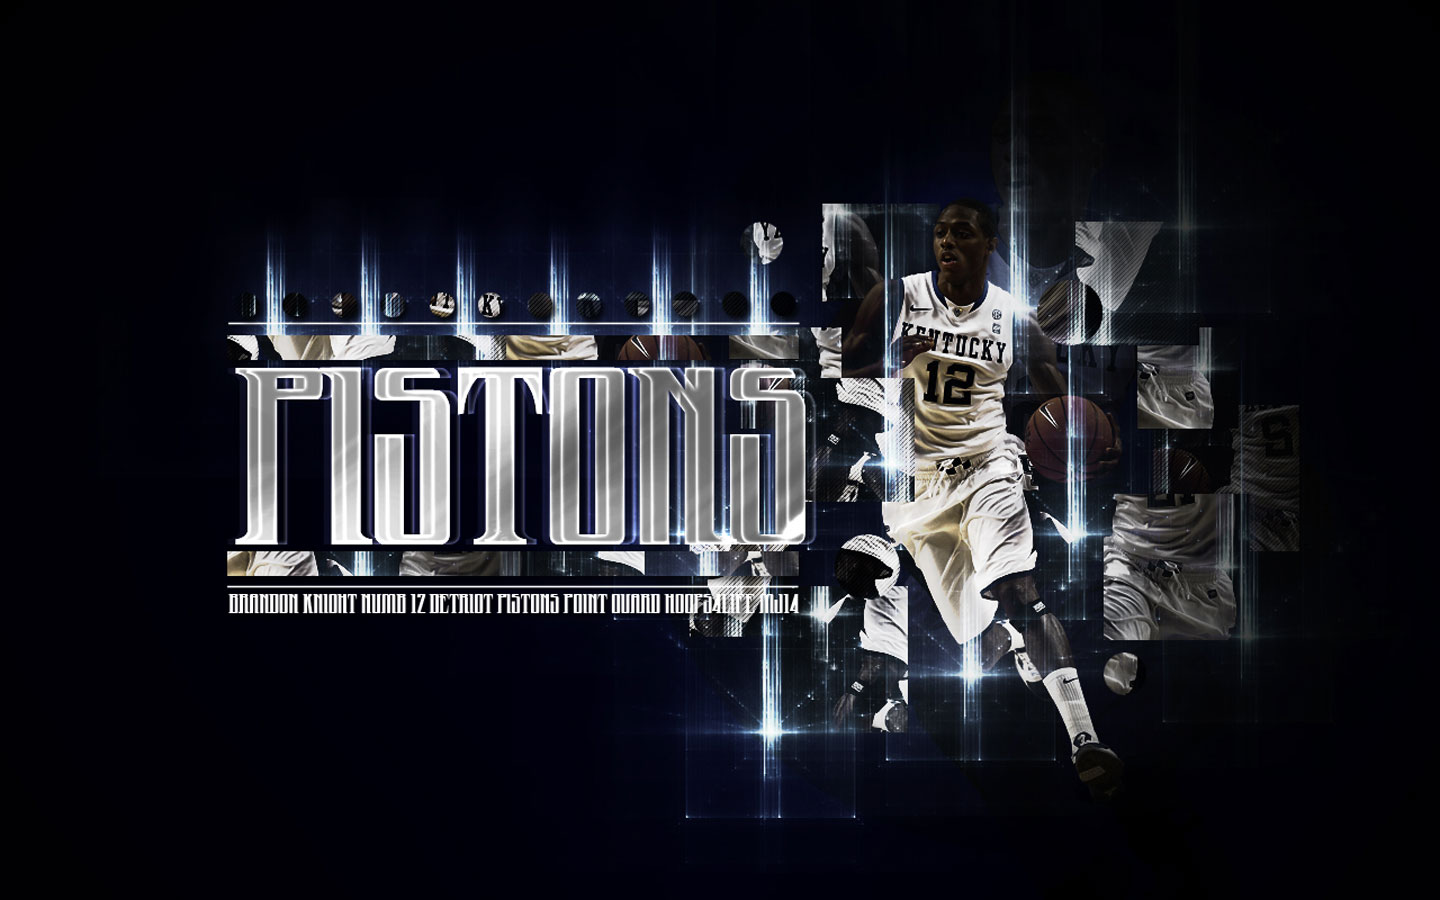 nba wallpapers john wall wallpapers kentucky basketball wallpapers i 1440x900